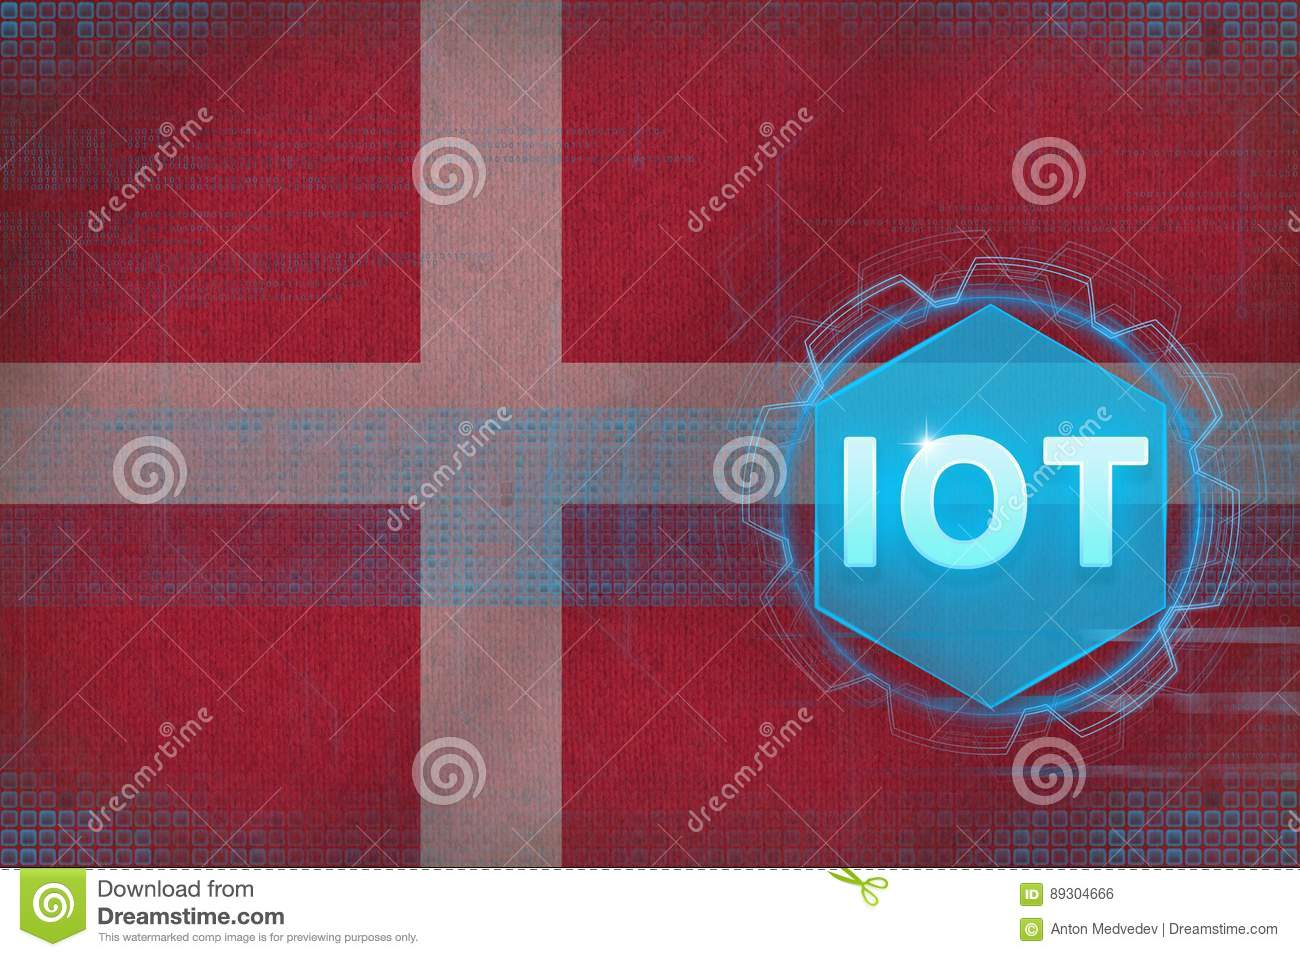 Denmark IOT (Internet of things). Internet of Things modern concept.